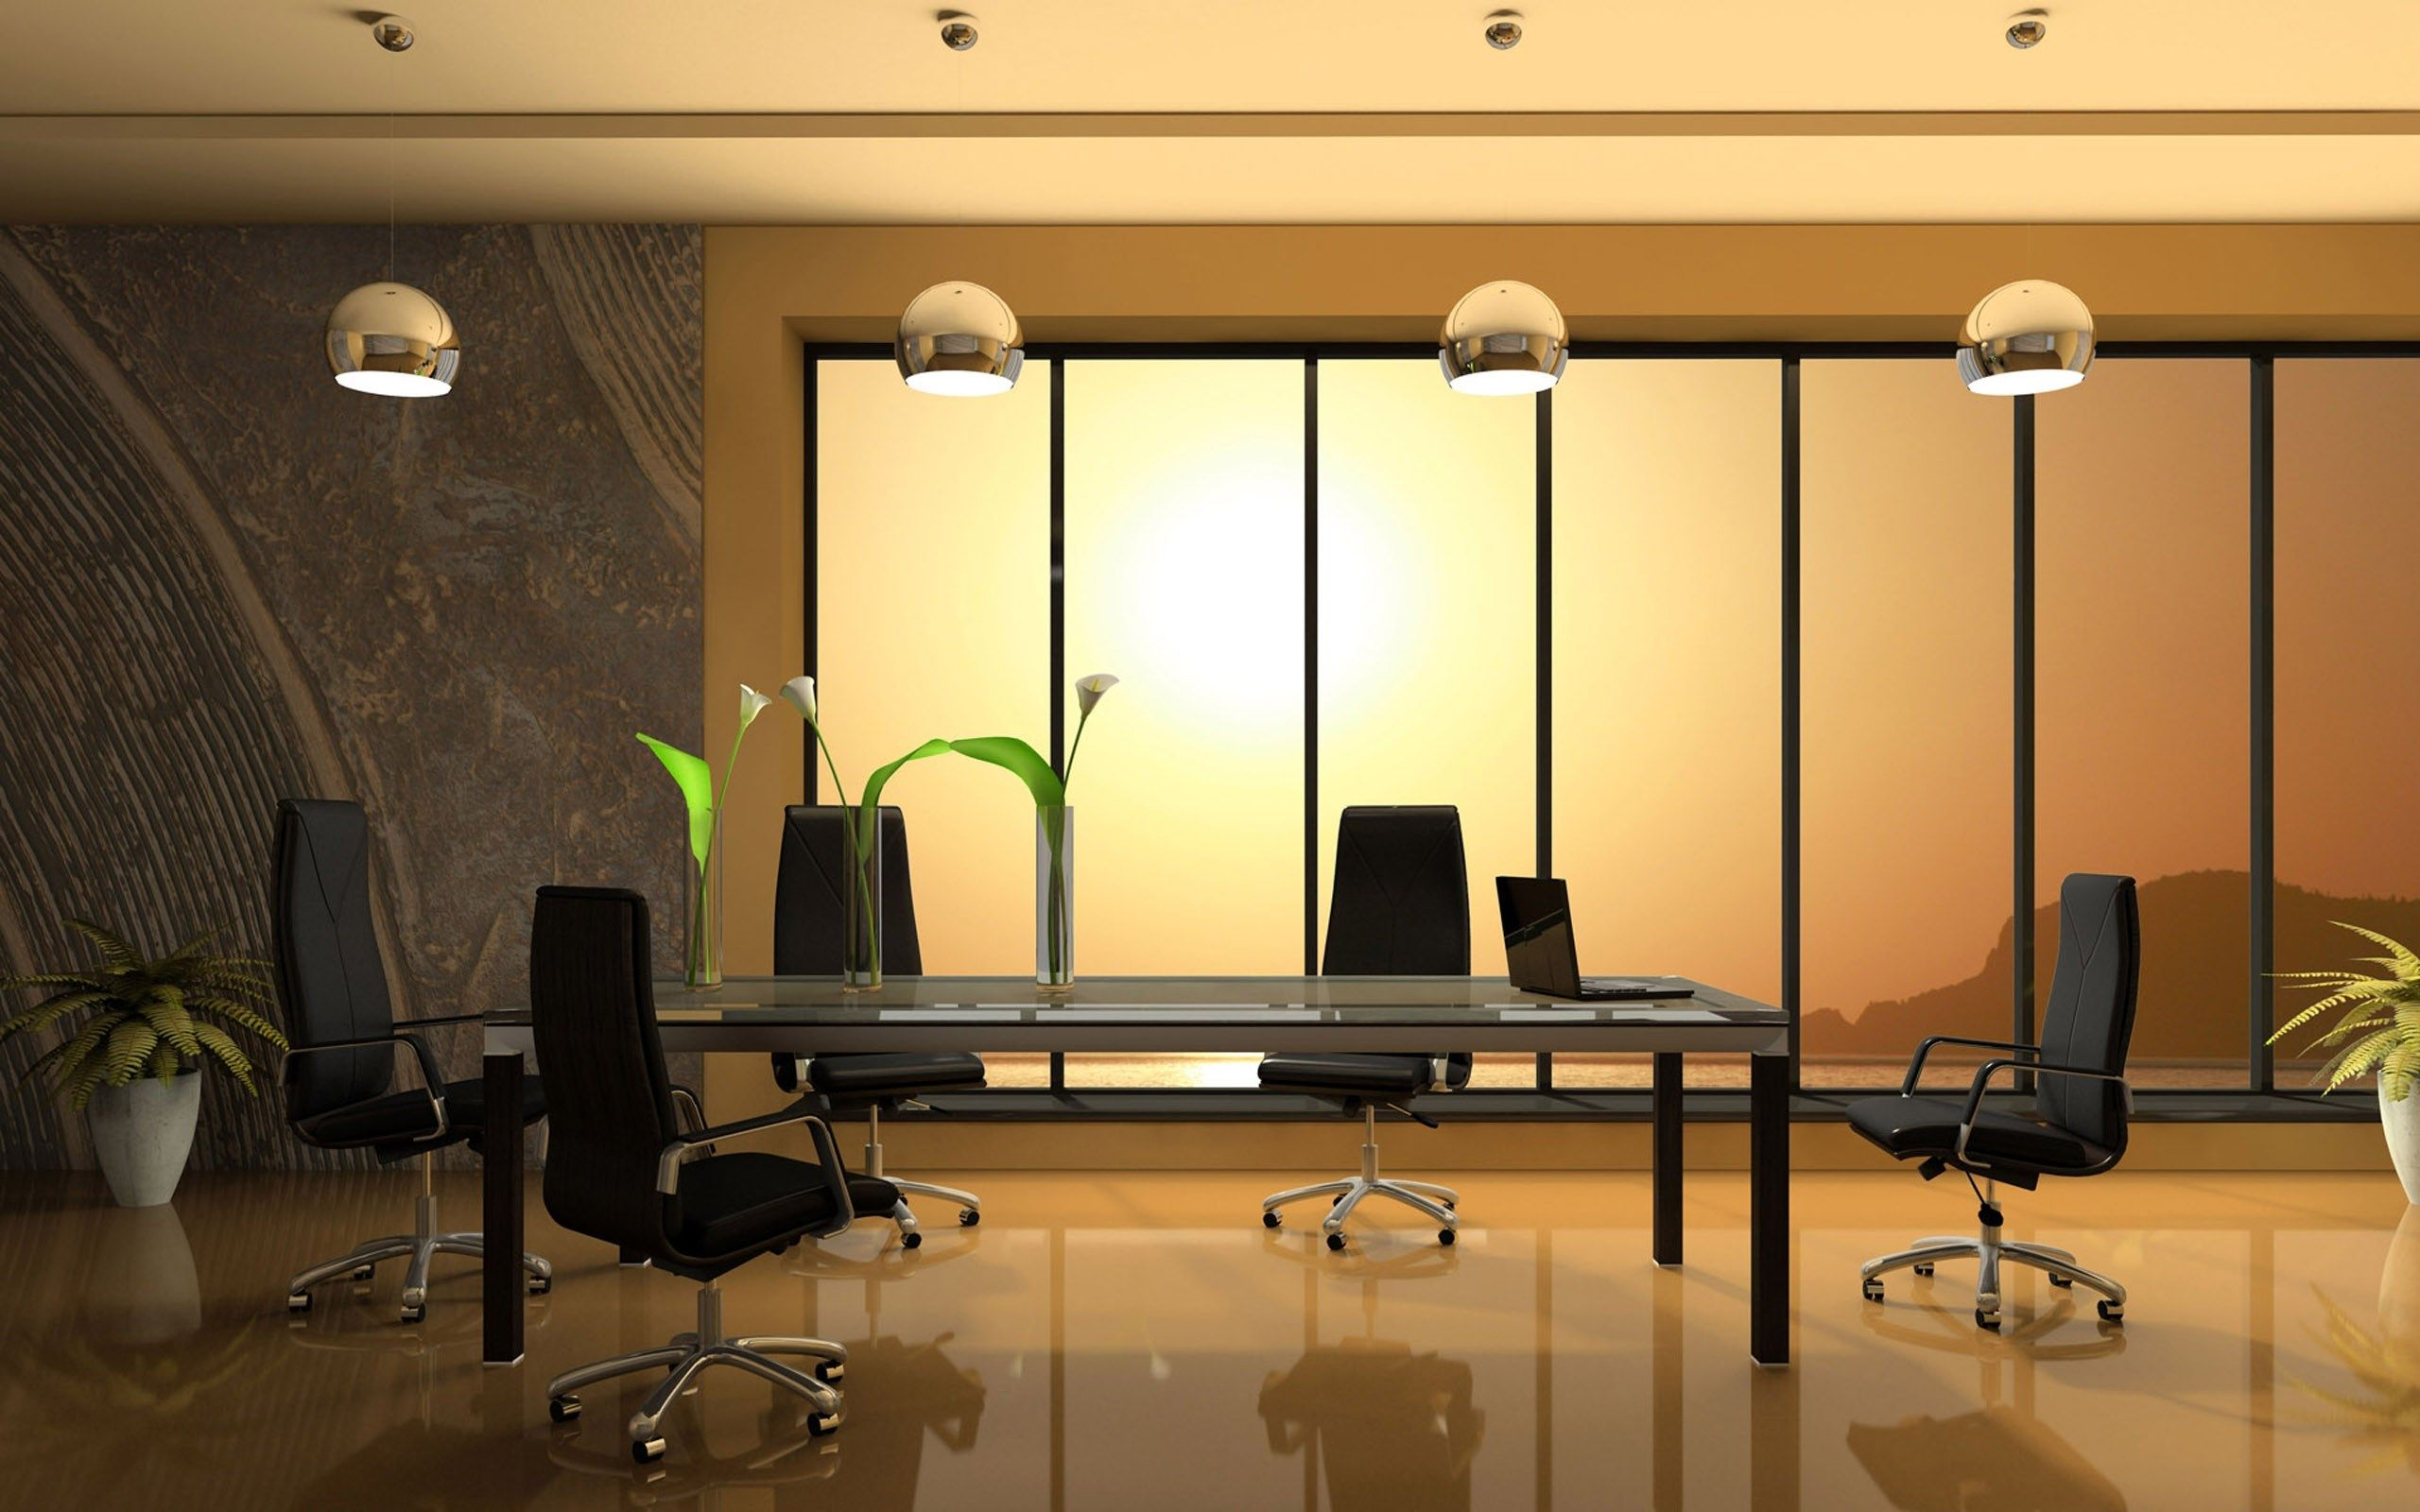 Pictures cubicle wallpaper hd leather swivel chairmeeting tableoffice decoroffice also sharovarka pinterest rh za